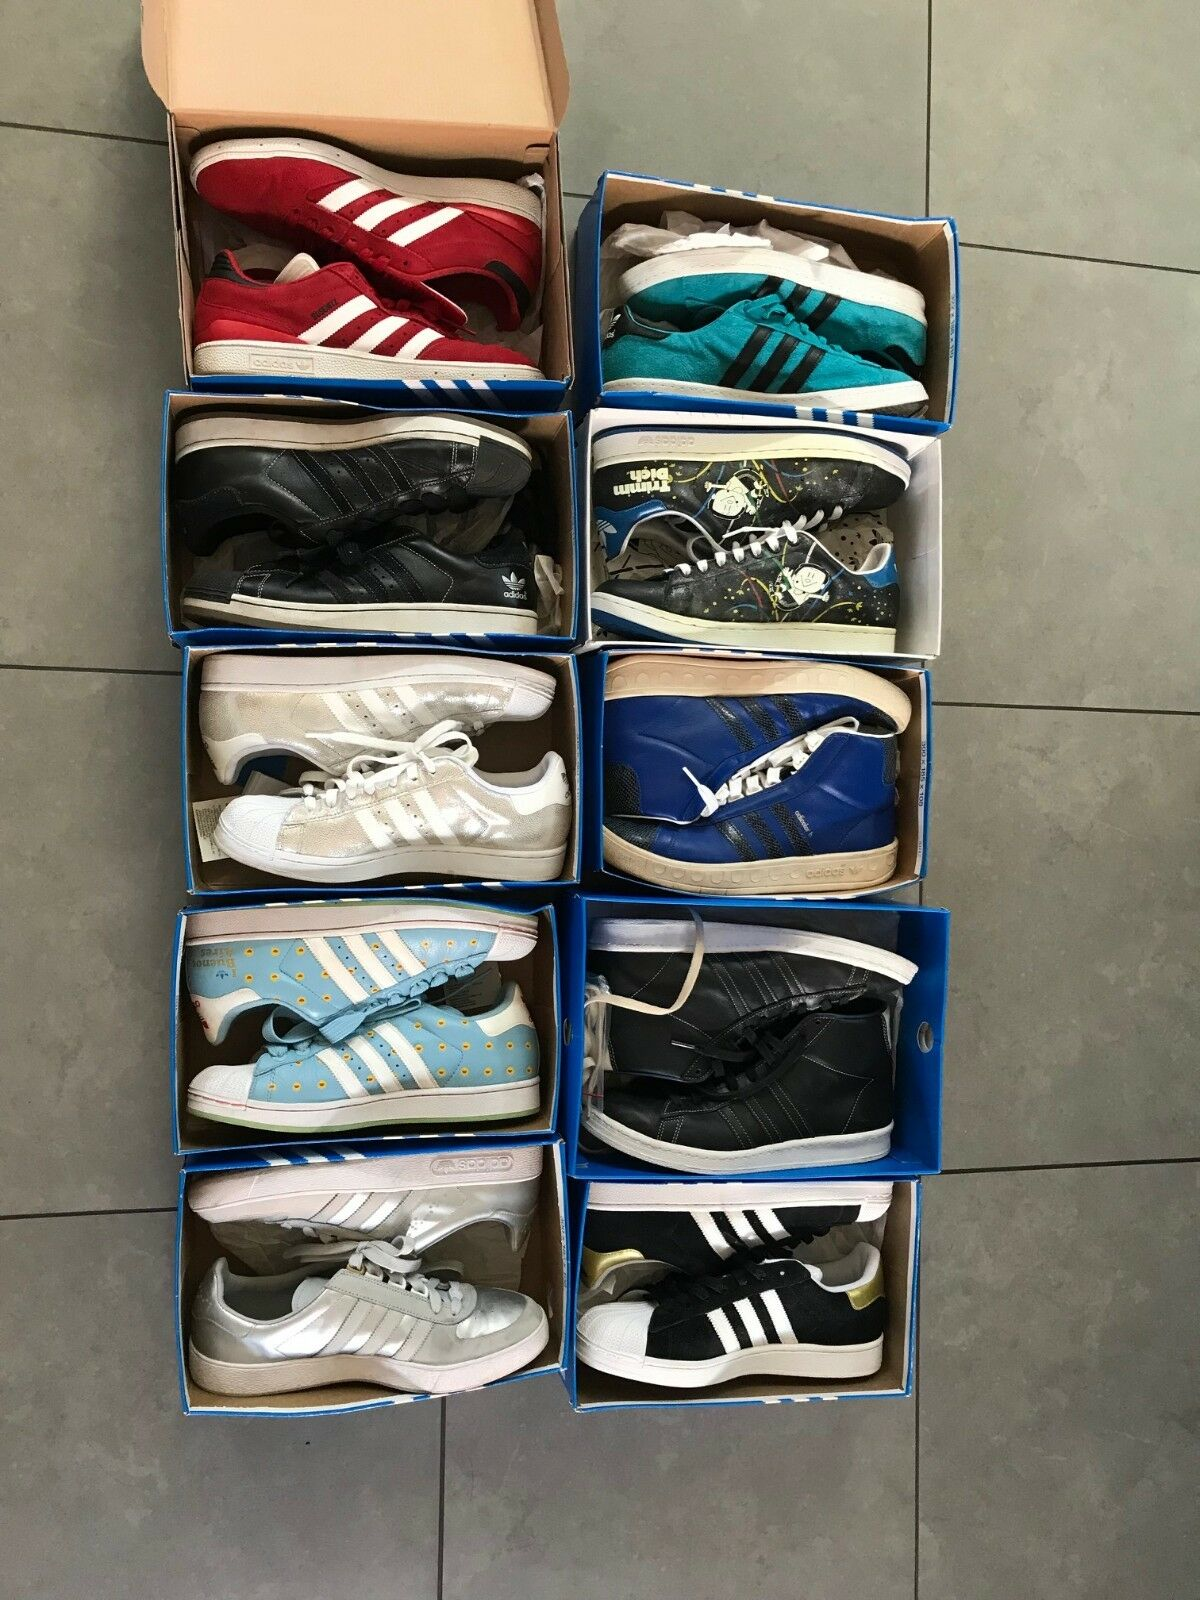 10 Pair of limited addition Adidas shoes. Men's size 9.5